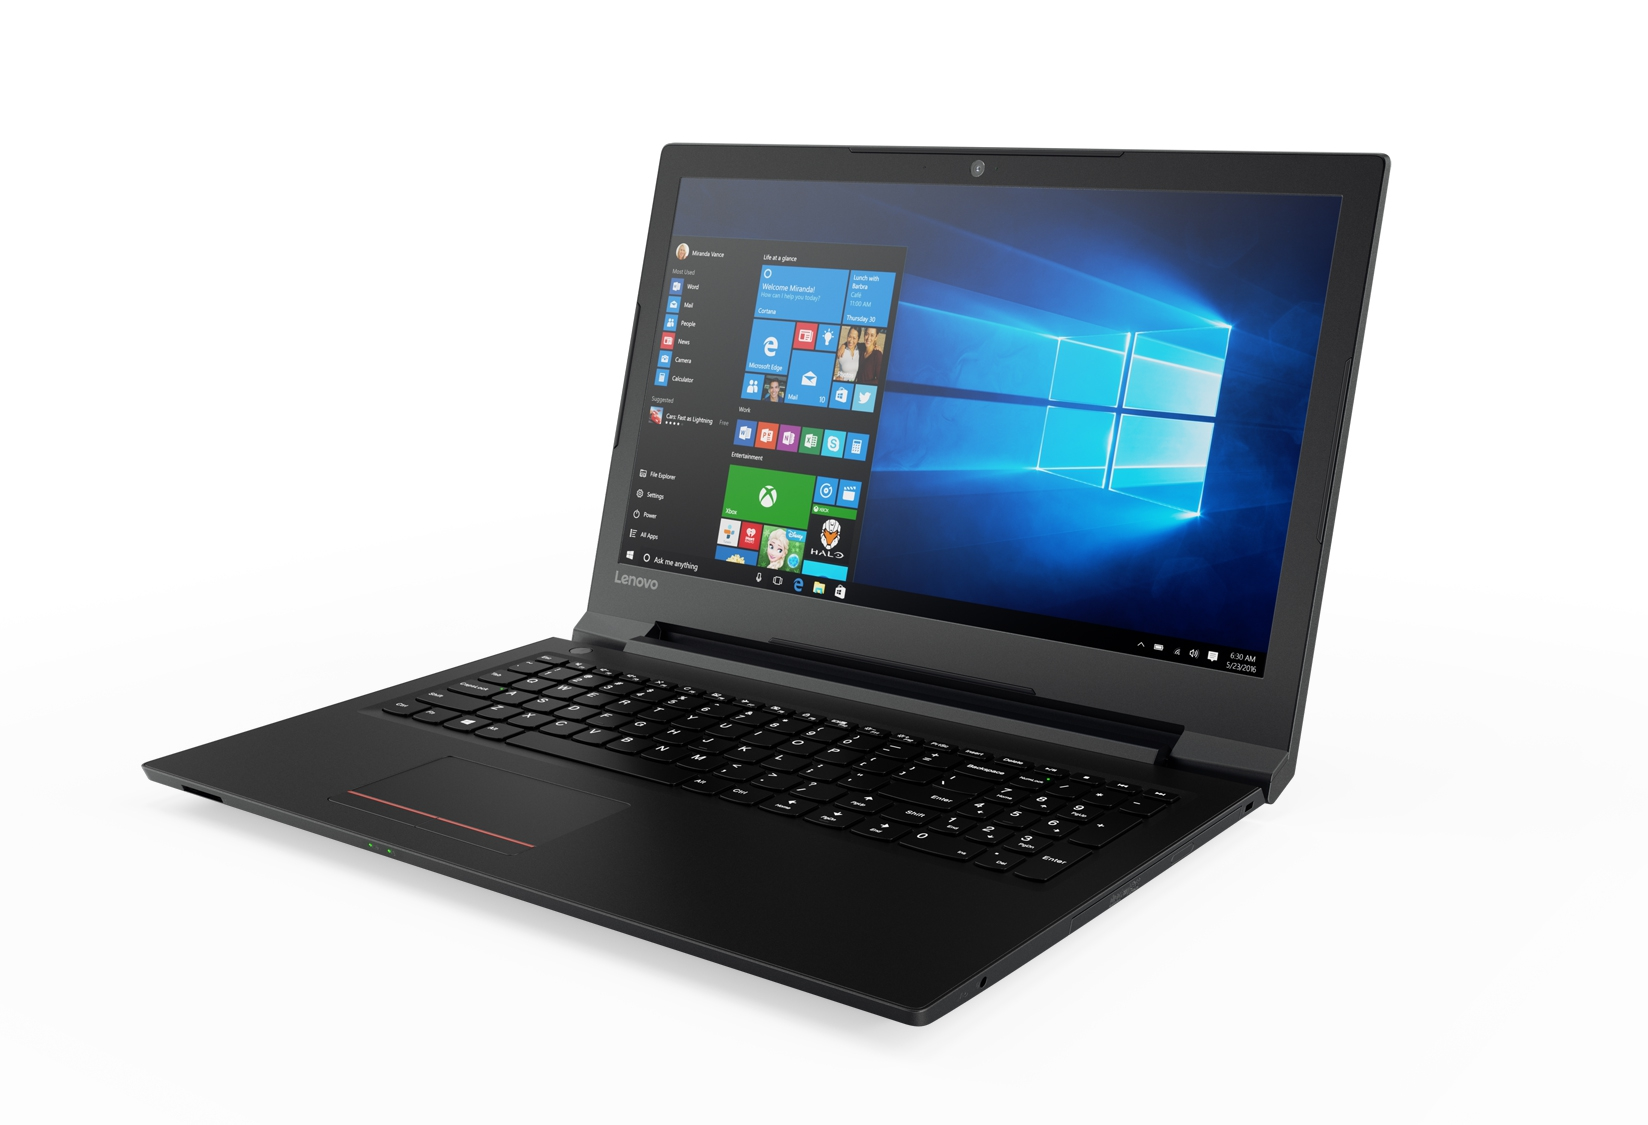 Laptop Lenovo IDEAPAD V110 80TL000PUK Core I5 6200U 156